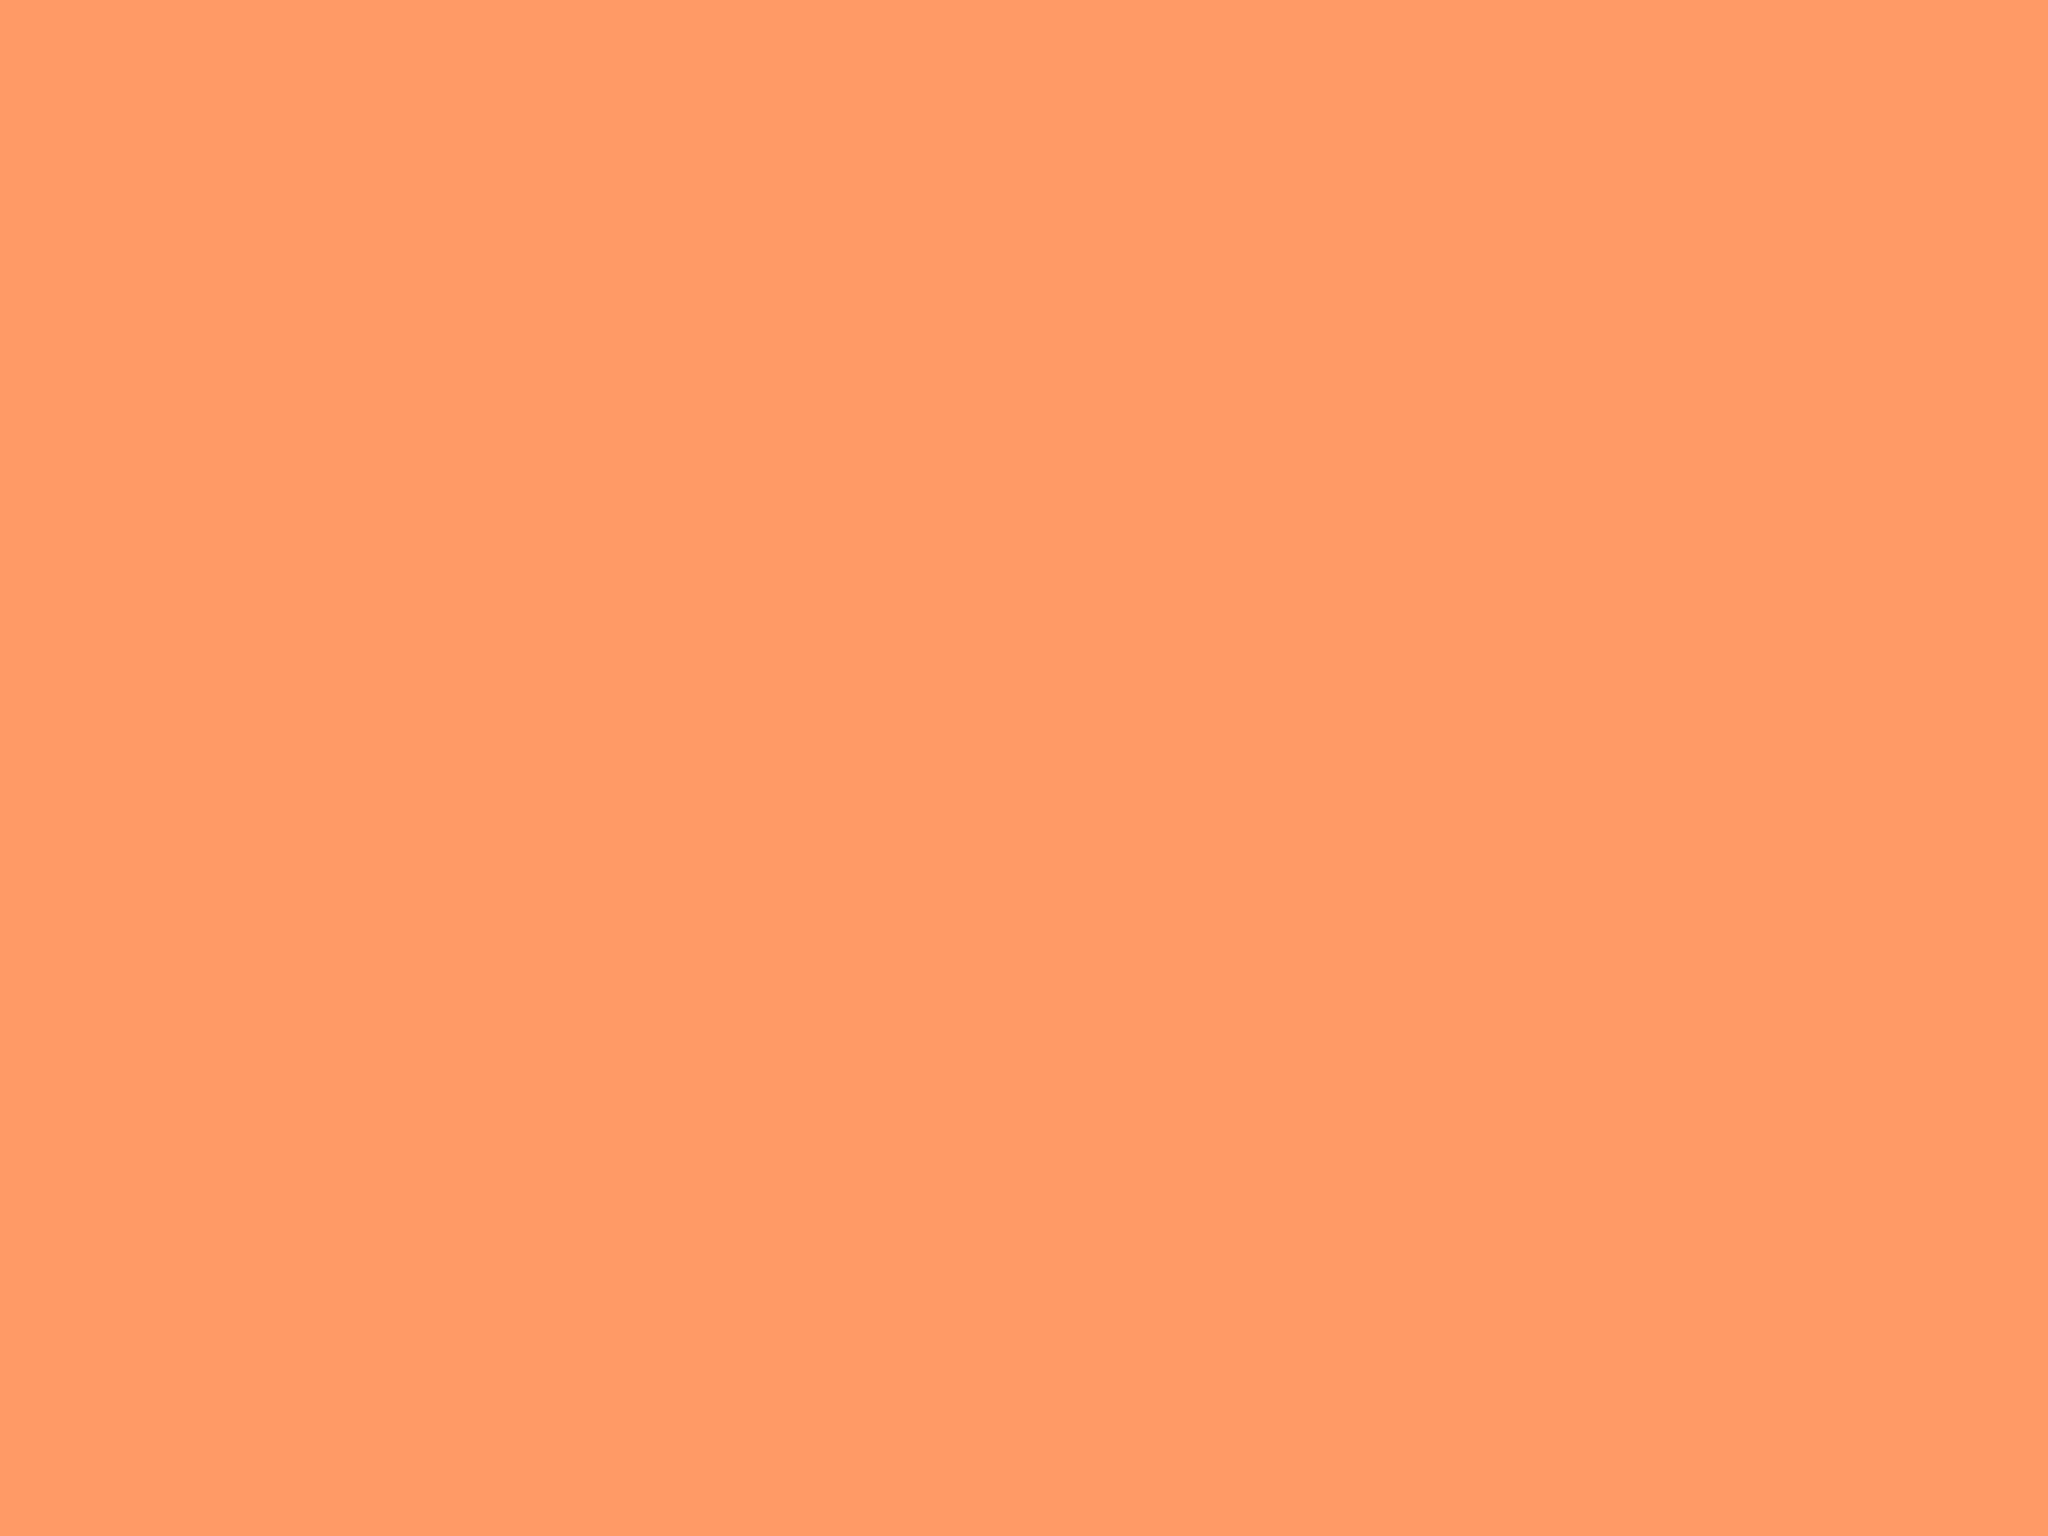 2048x1536 Atomic Tangerine Solid Color Background